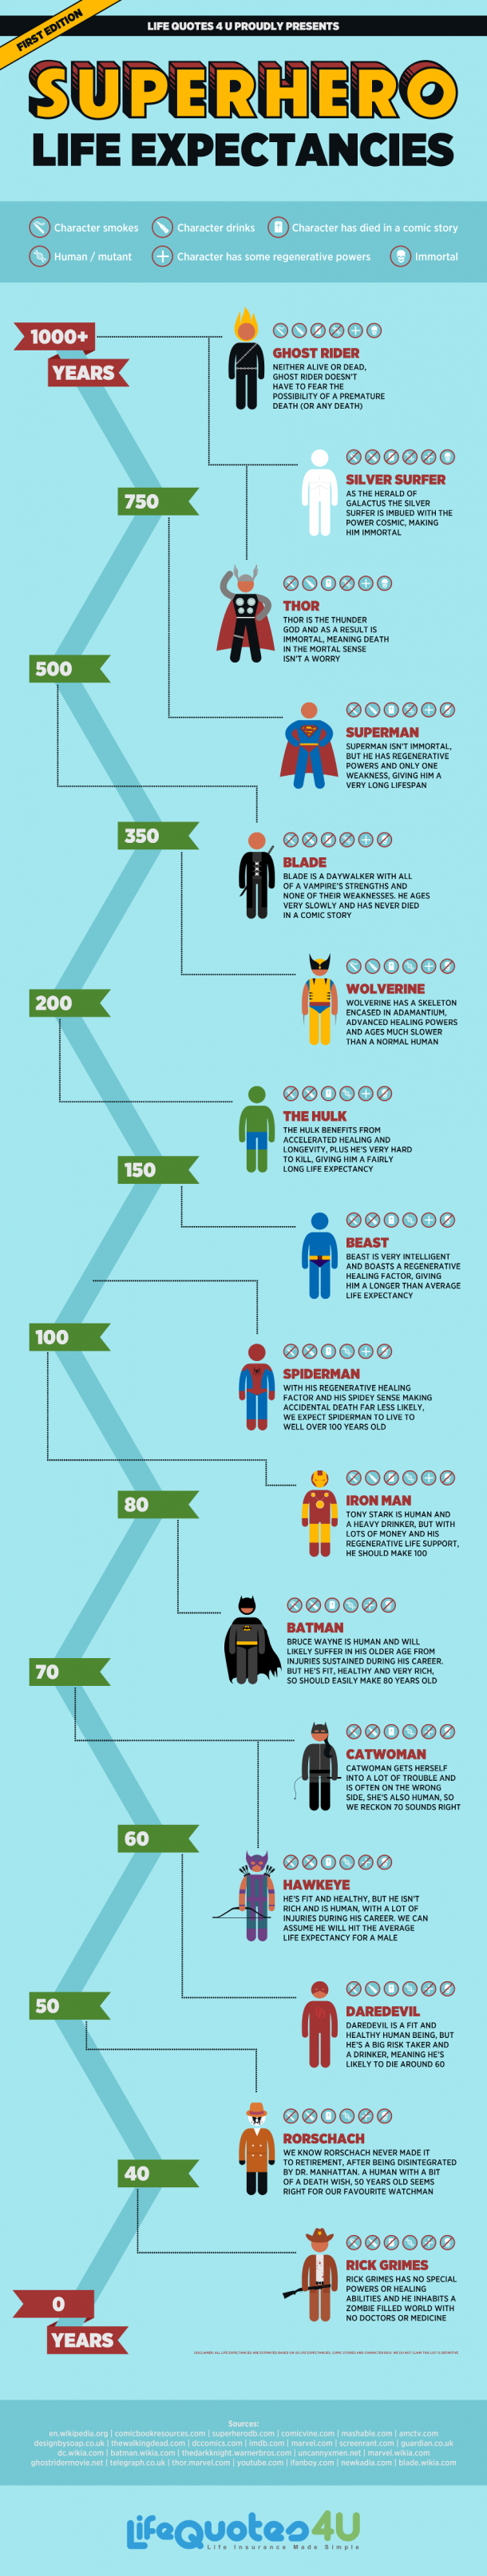 Superhero Life Expectancies